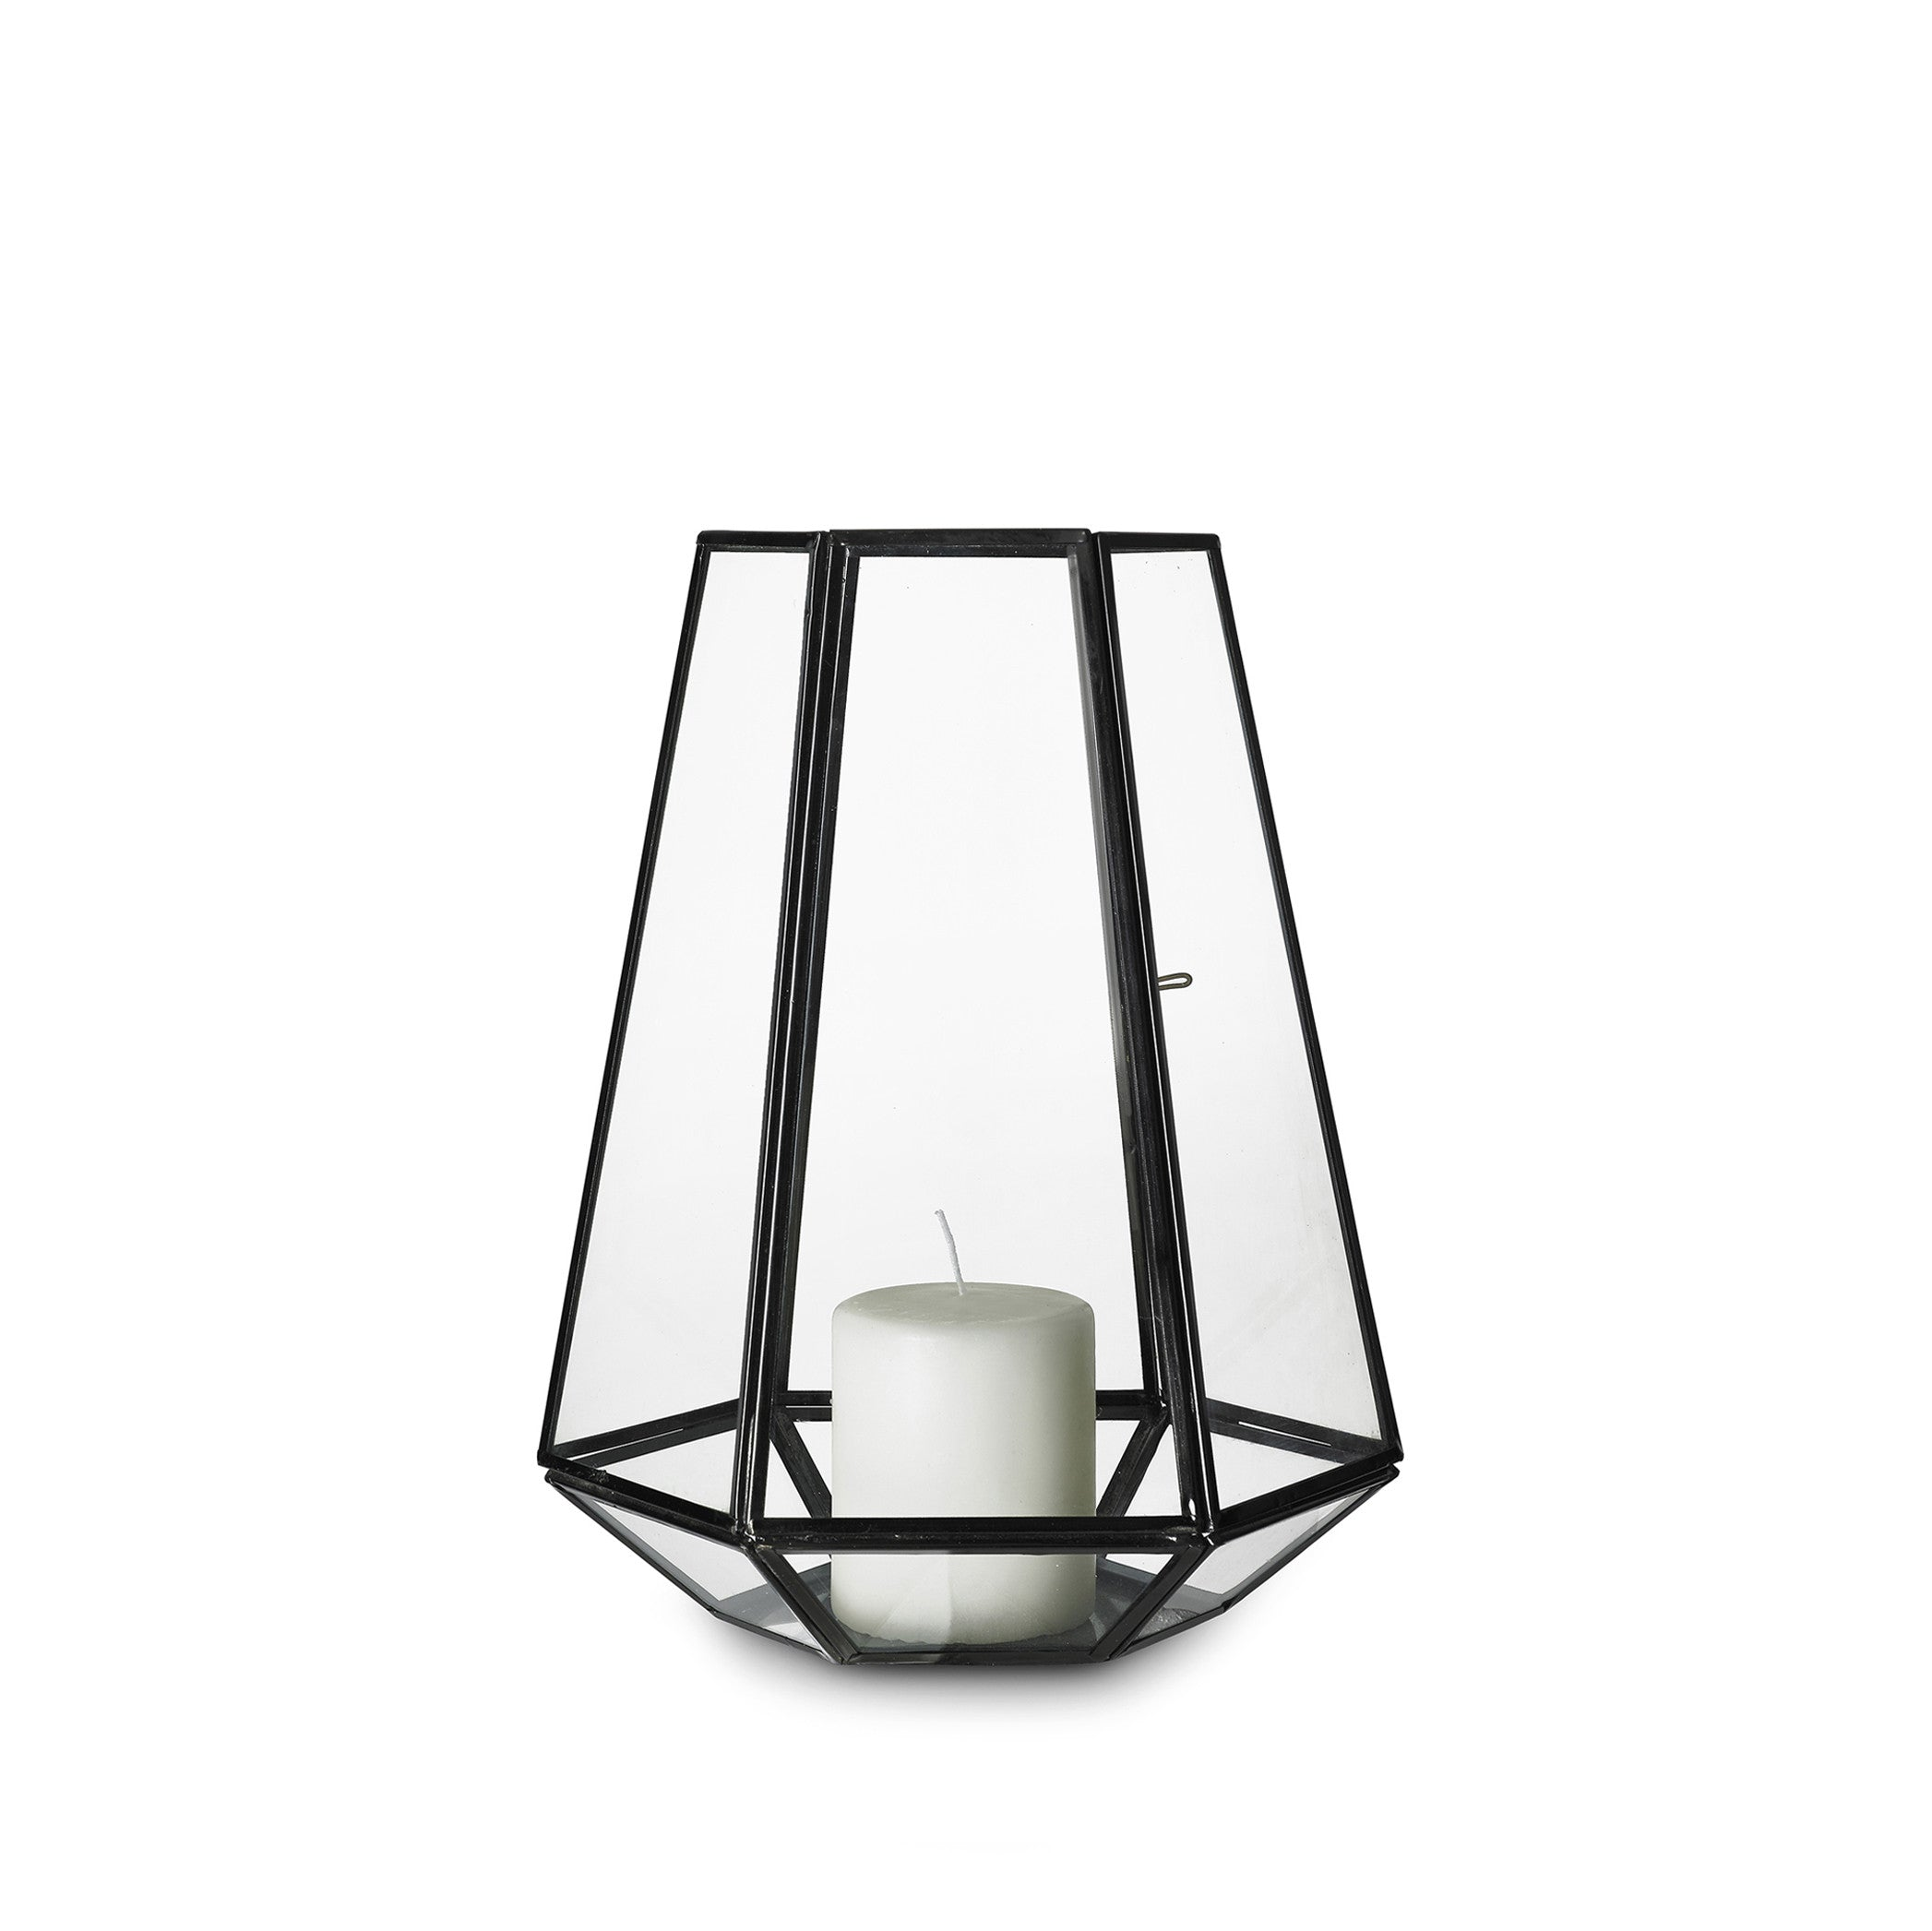 Framed Hexagonal Lantern in Black, Large